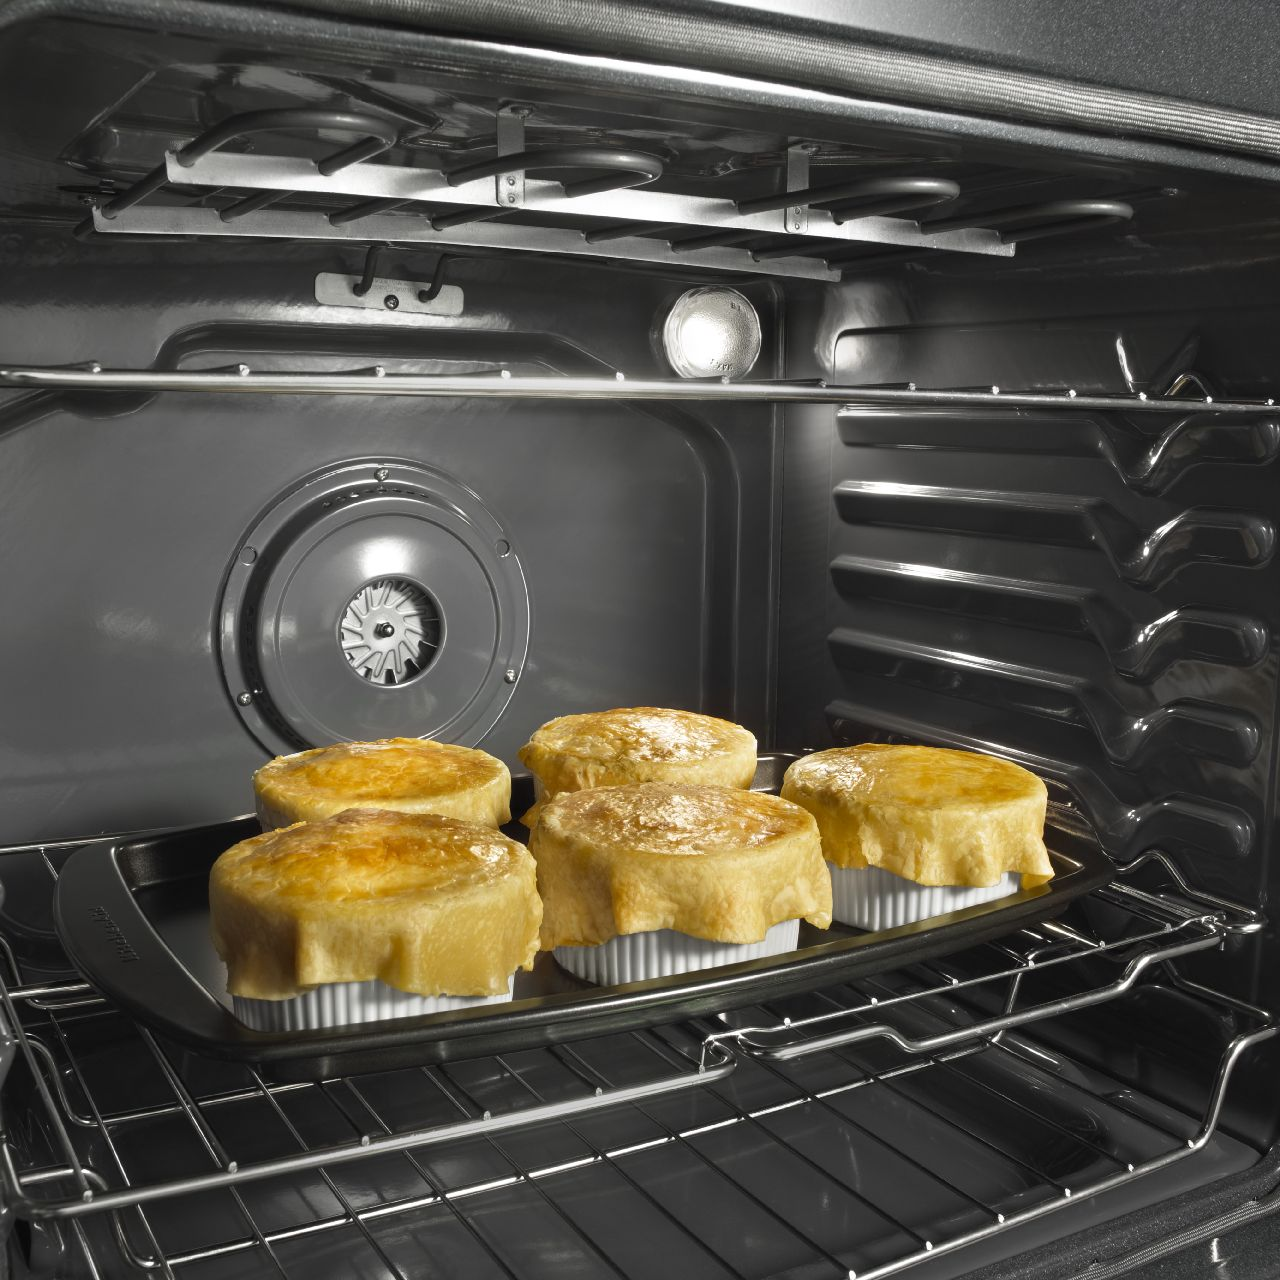 Your Convection Oven Cooking Questions Answered